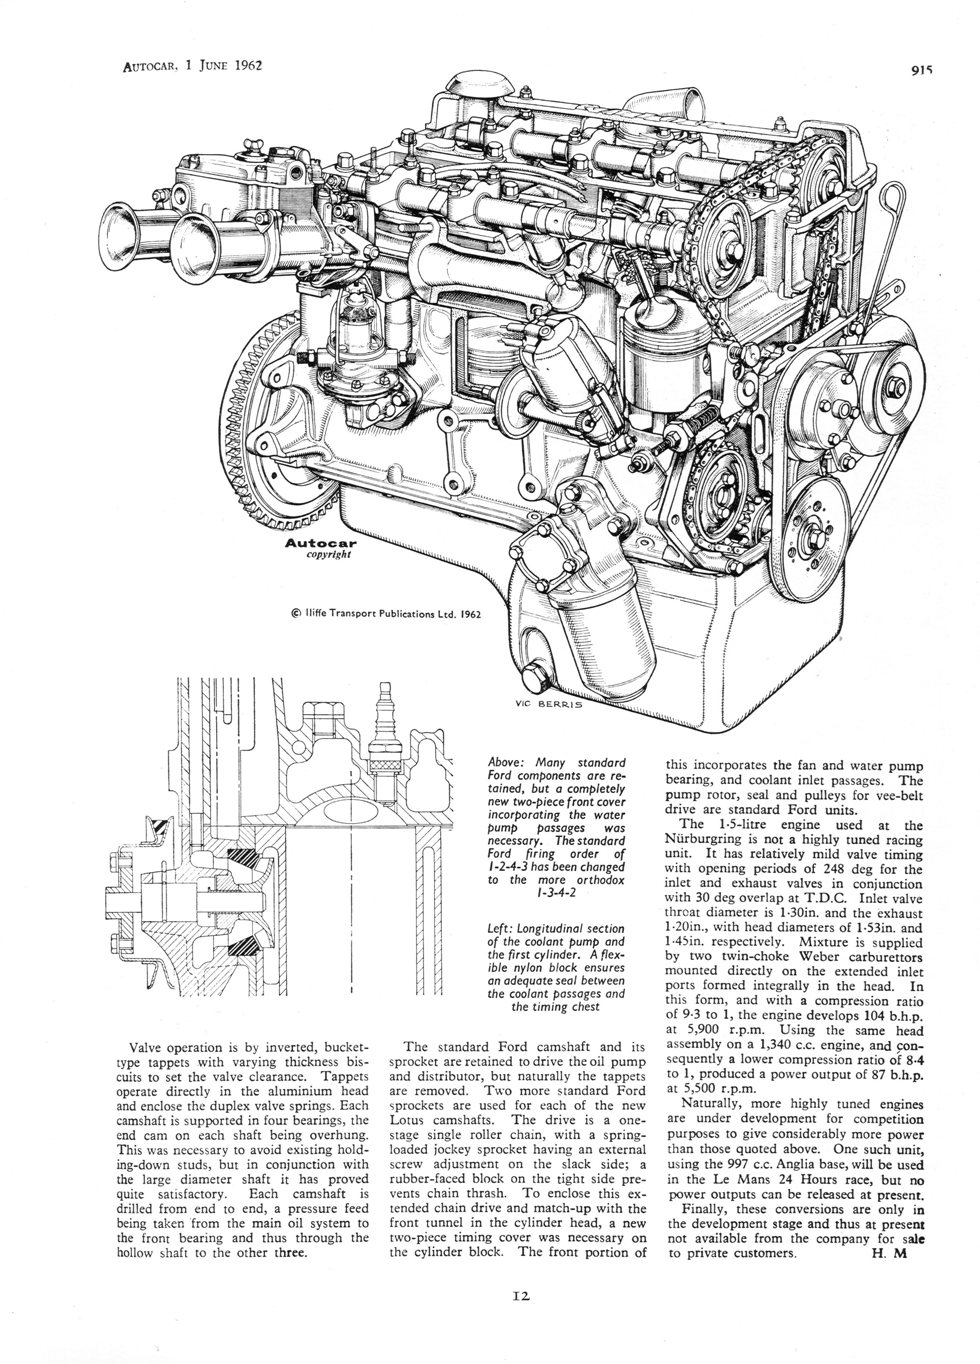 hight resolution of the old anglia was treated to a new 1500cc 5 bearing engine and in july